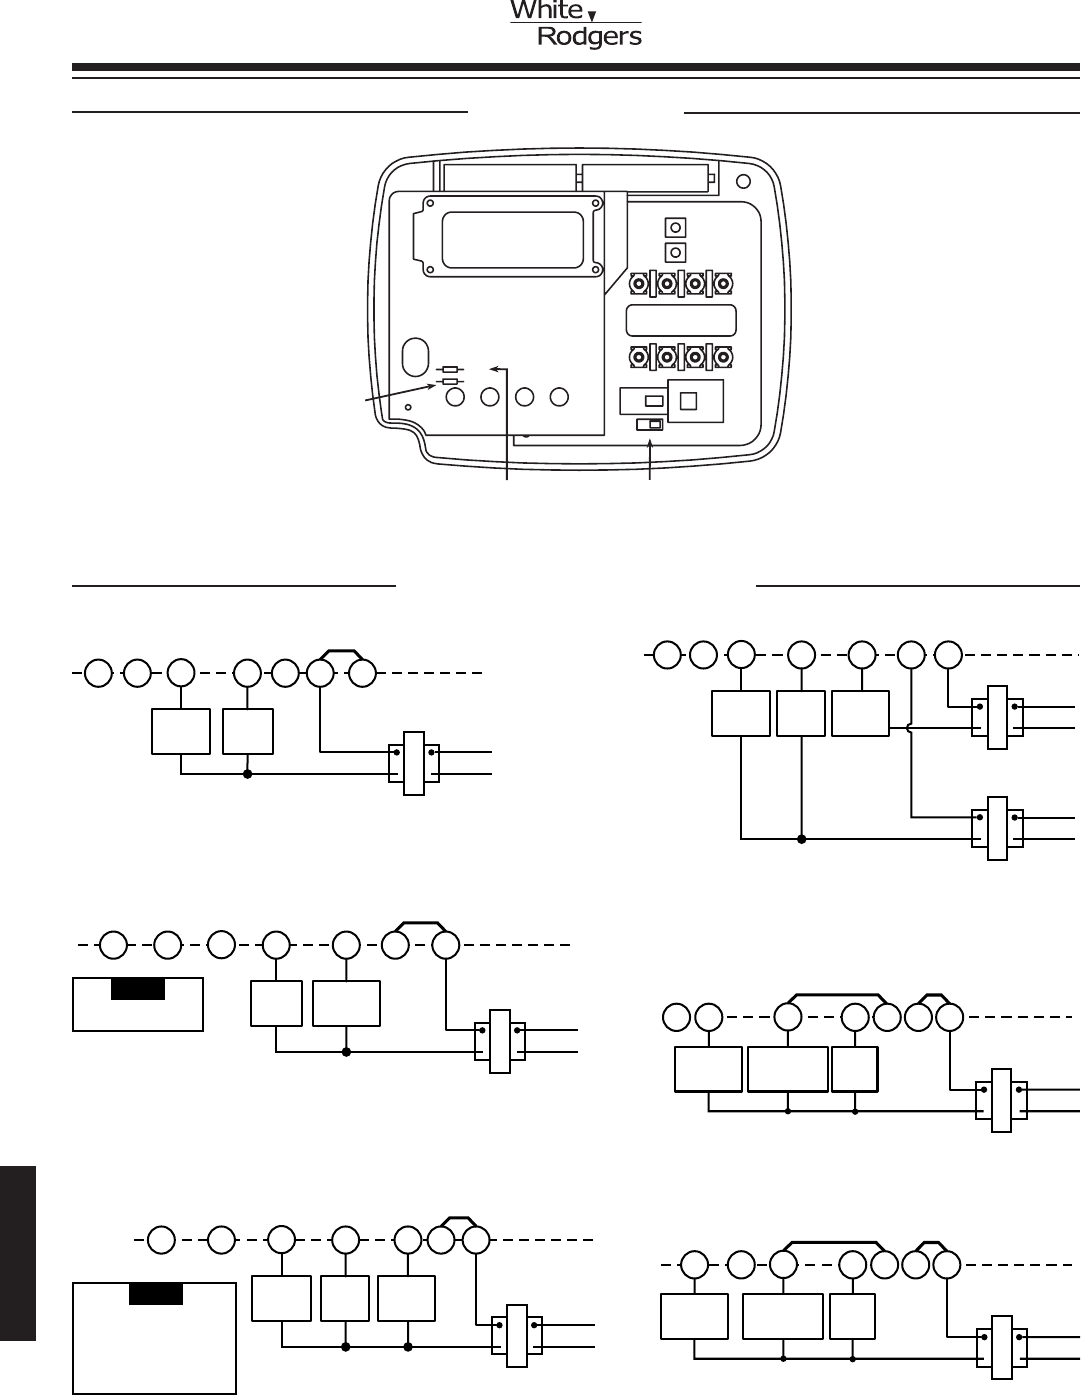 498fbc67 ccce 4ce2 8ff4 ea2dcff5d789 bg1 emerson thermostat 1f78 151 user guide manualsonline com wiring diagram emerson digital thermostat at reclaimingppi.co